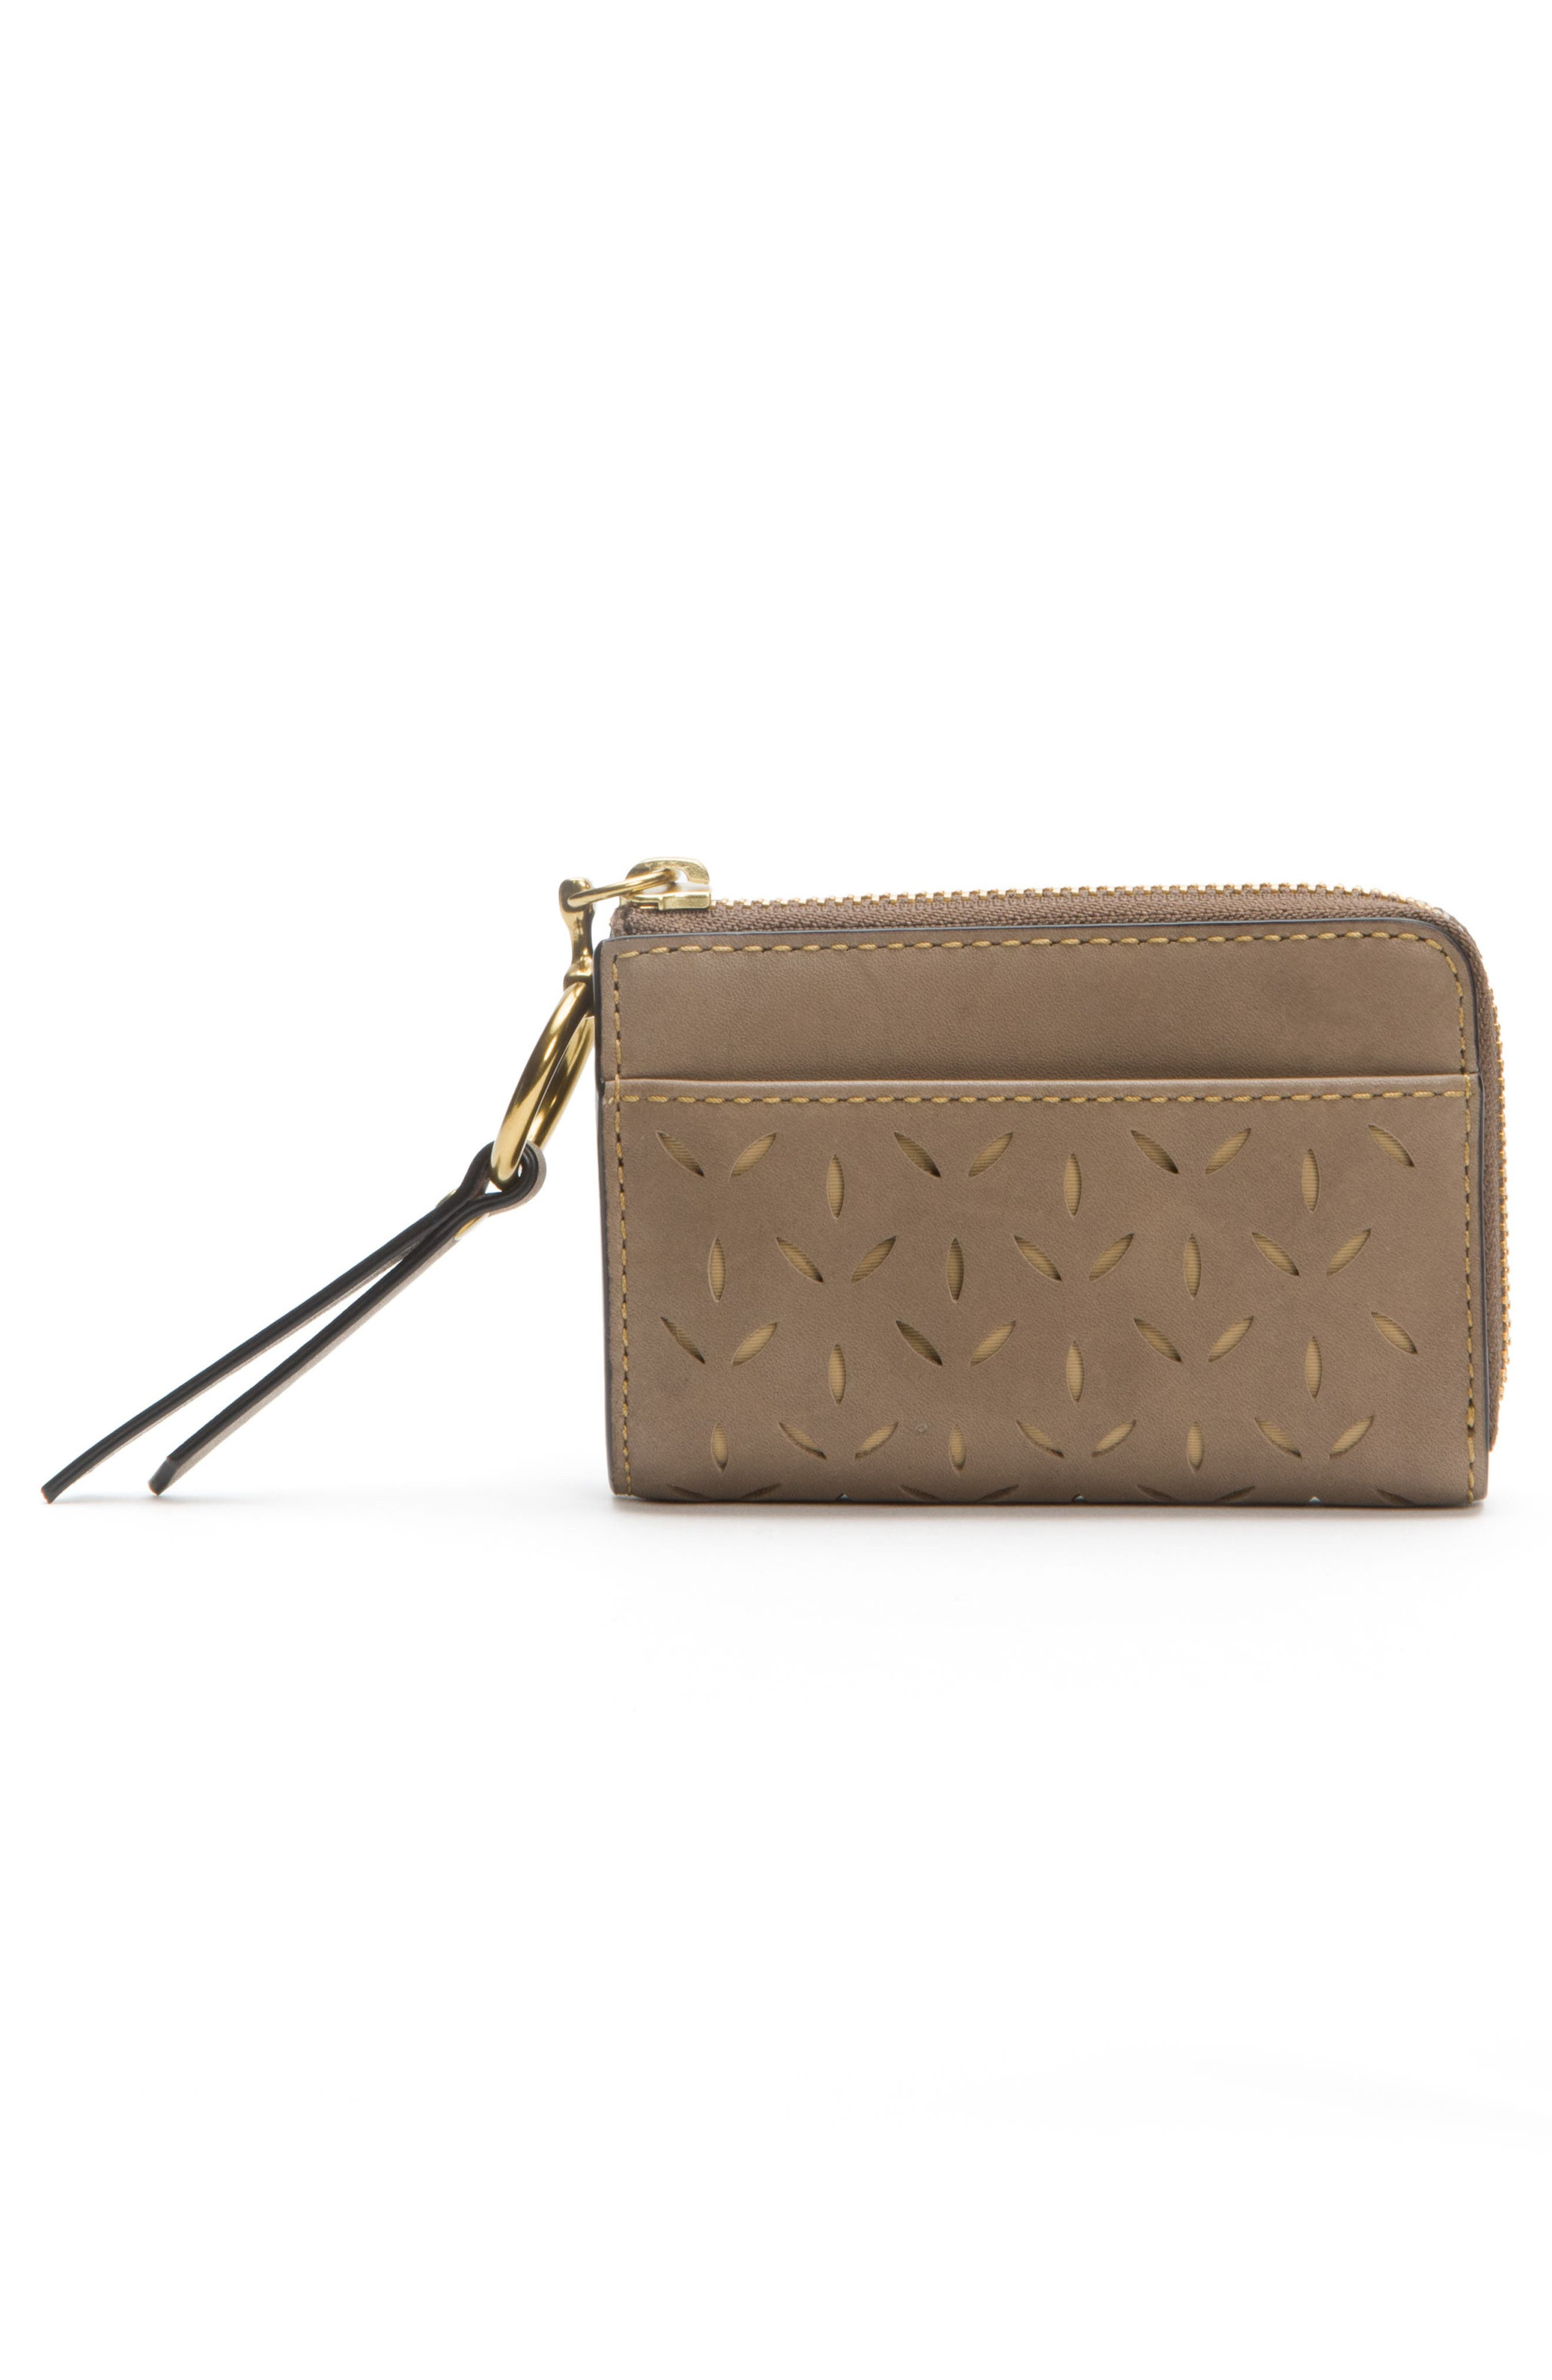 Ilana Small Perforated Leather Zip Wallet,                             Alternate thumbnail 8, color,